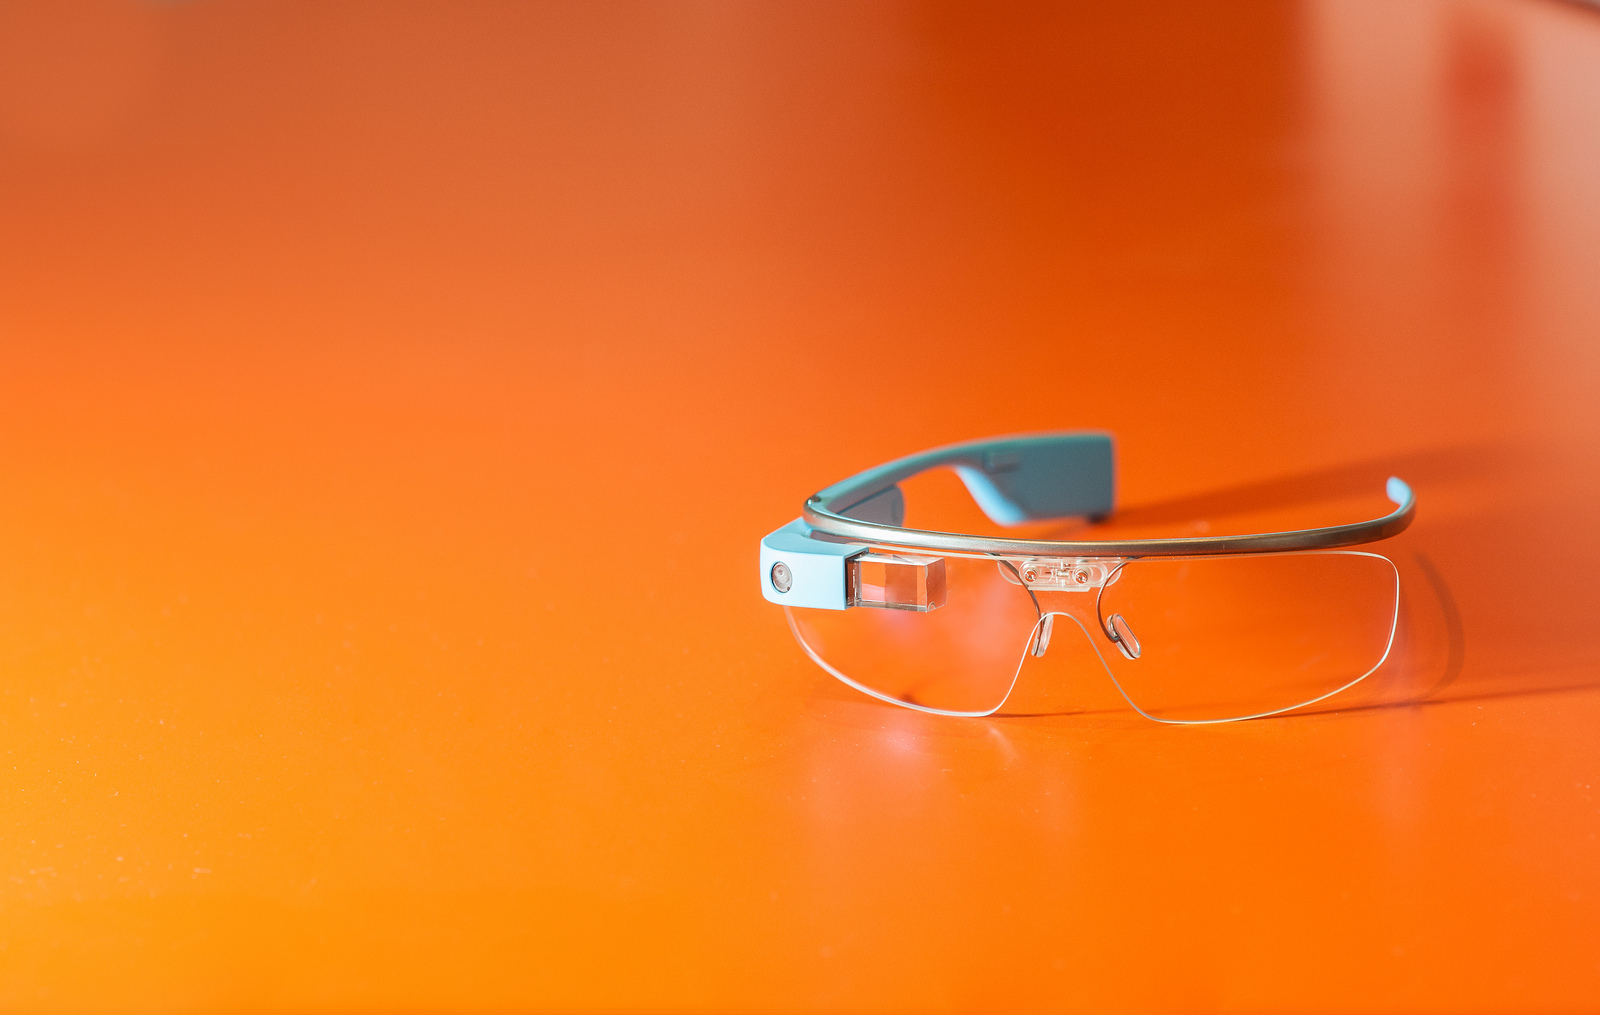 The impact of wearable tech on office IT security